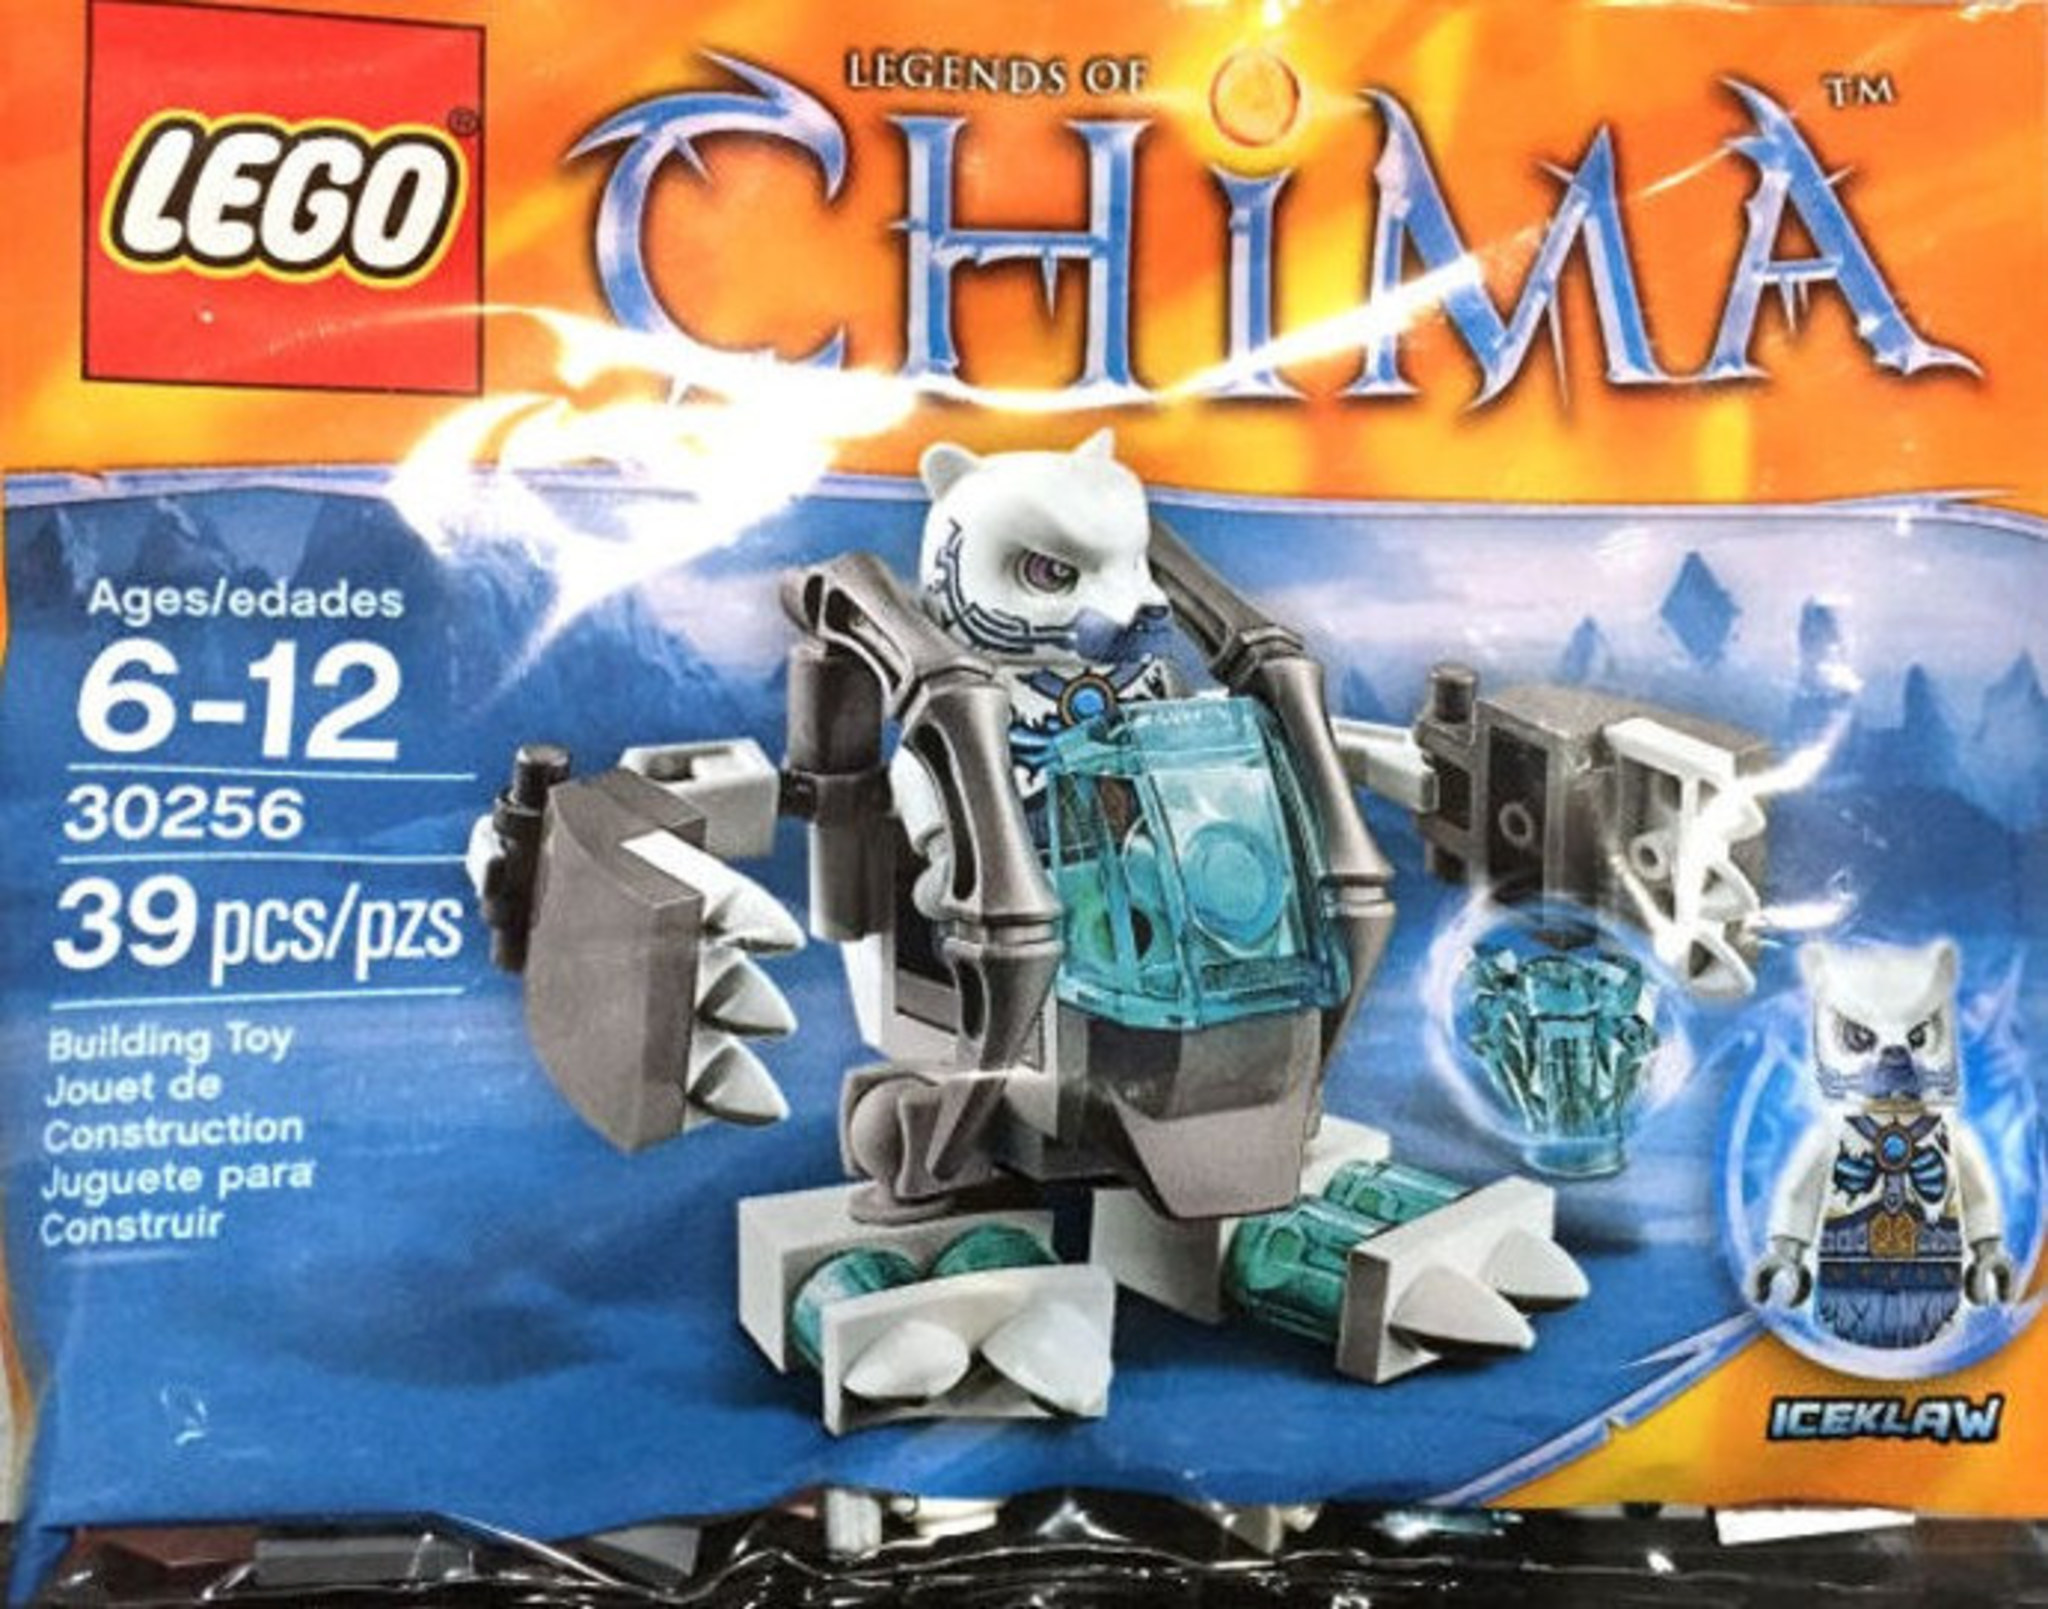 Lego Dh29ie Bear 30256 Ice Mechmattonito Chima XkuTZiPwO